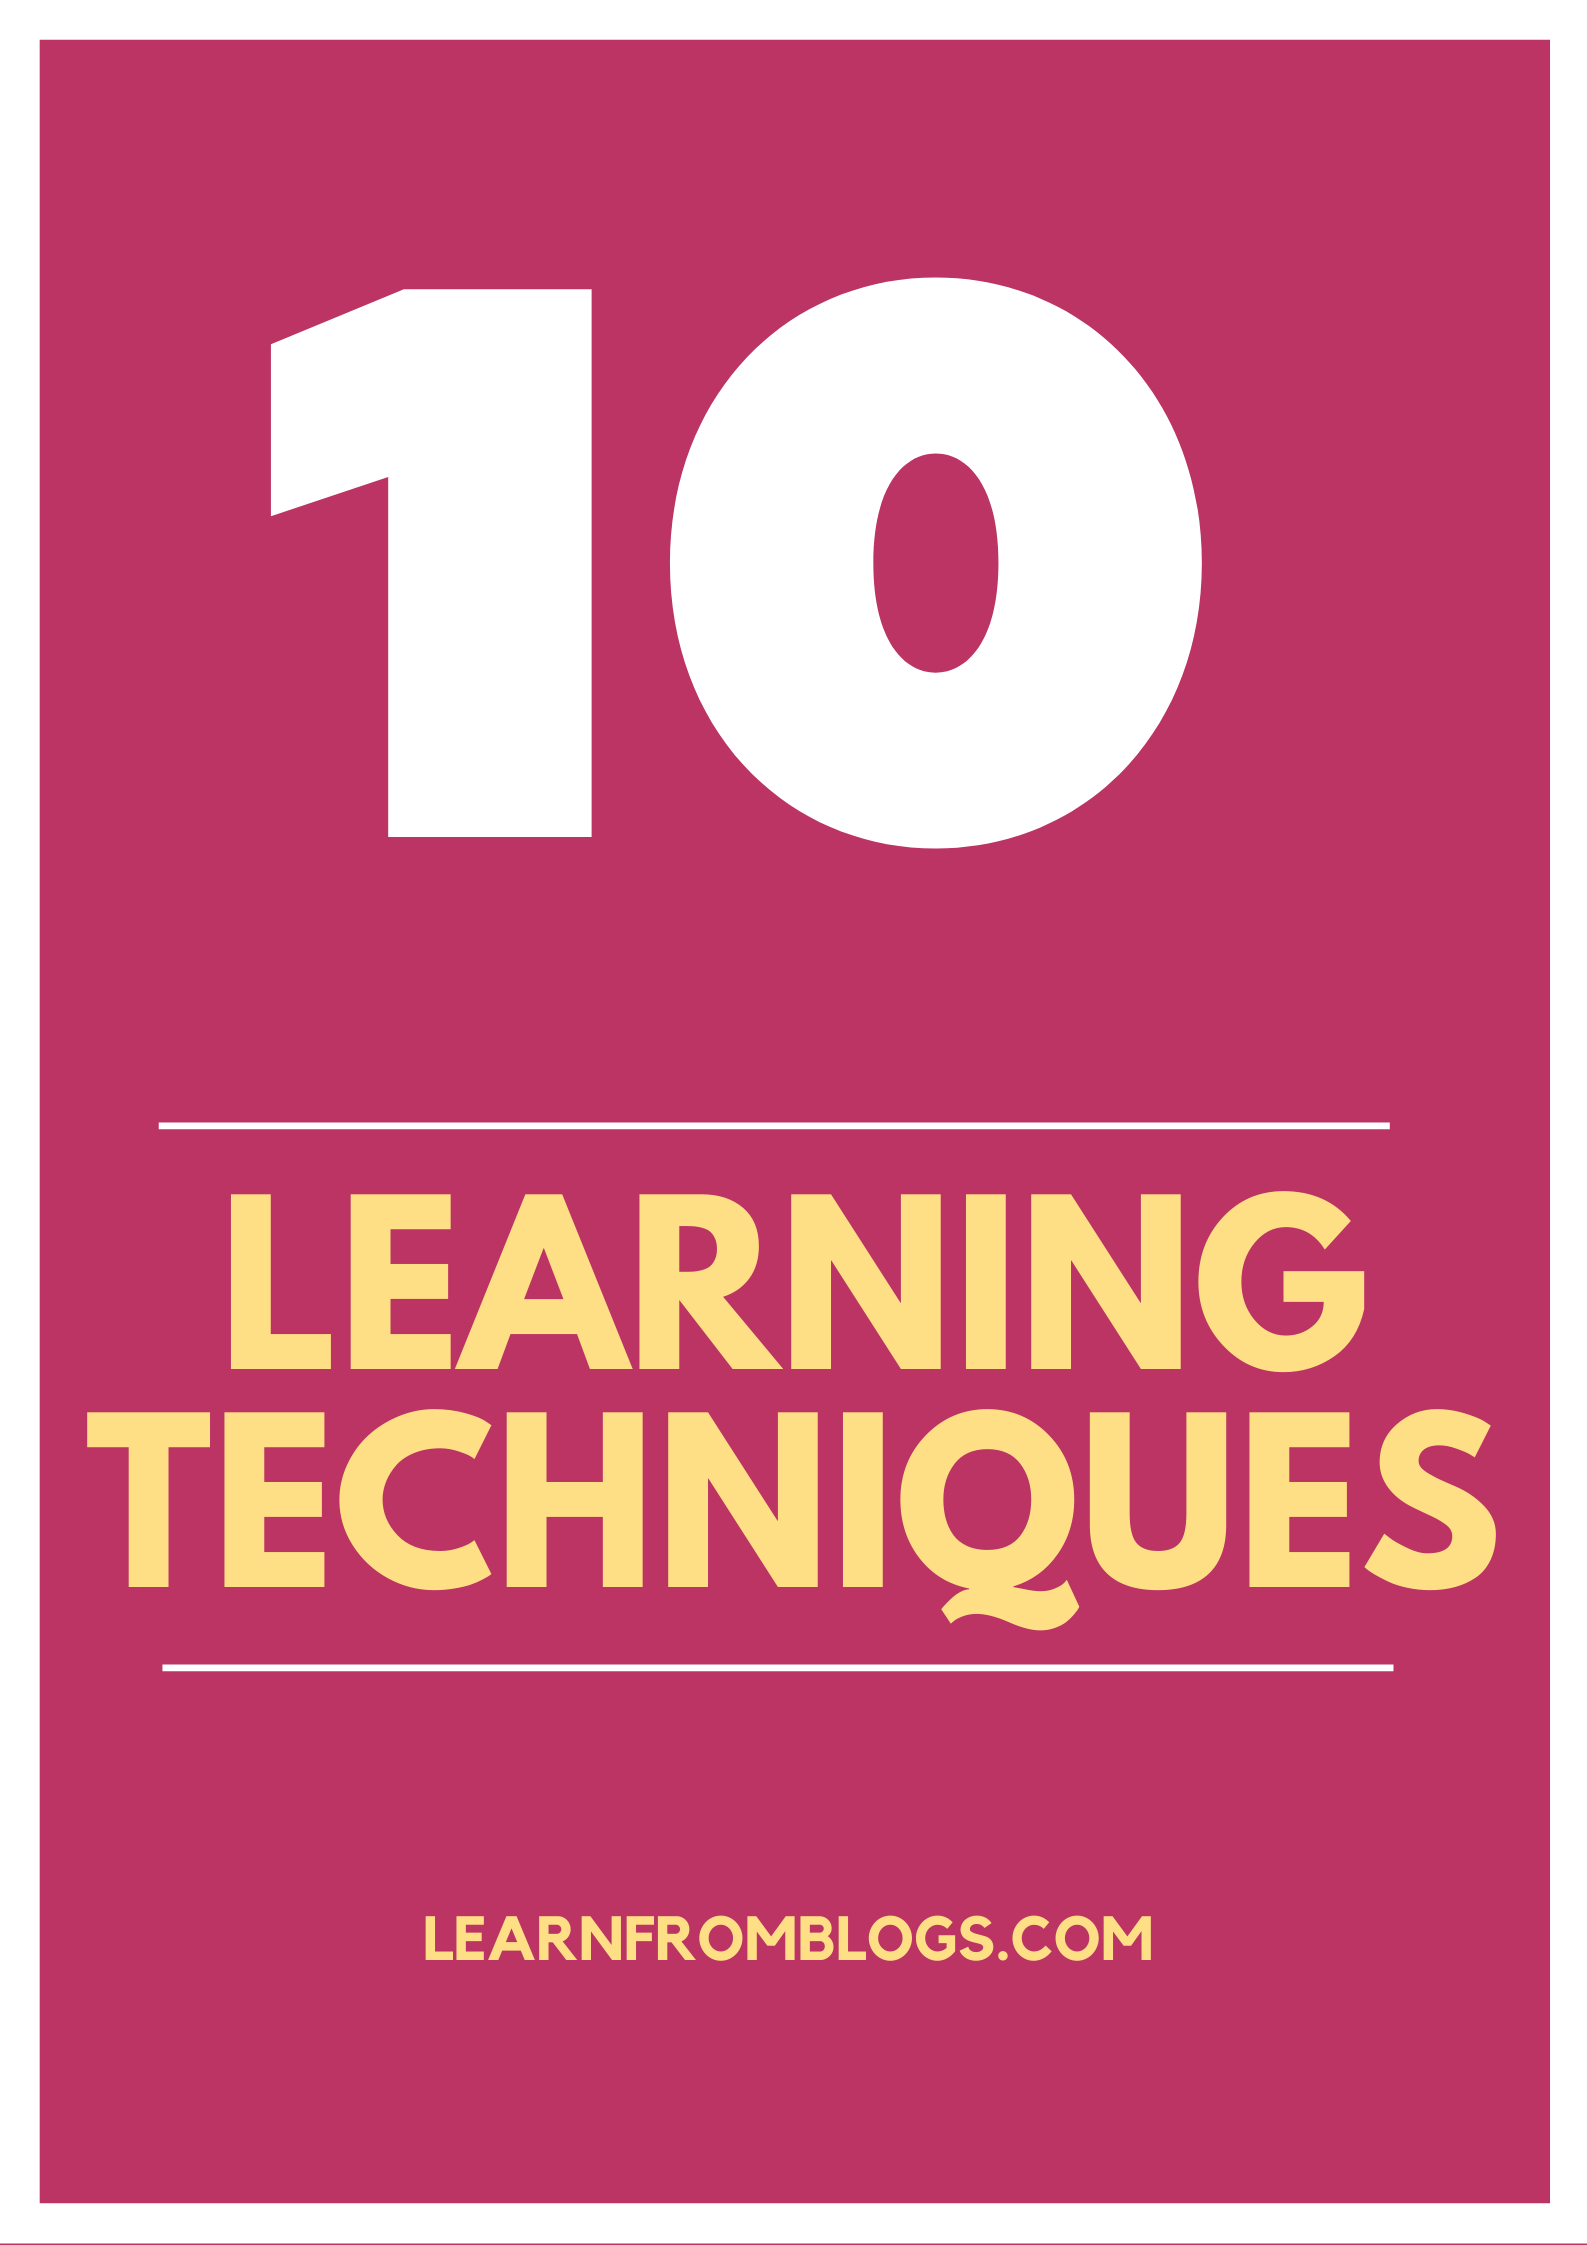 10 learning techniques.png